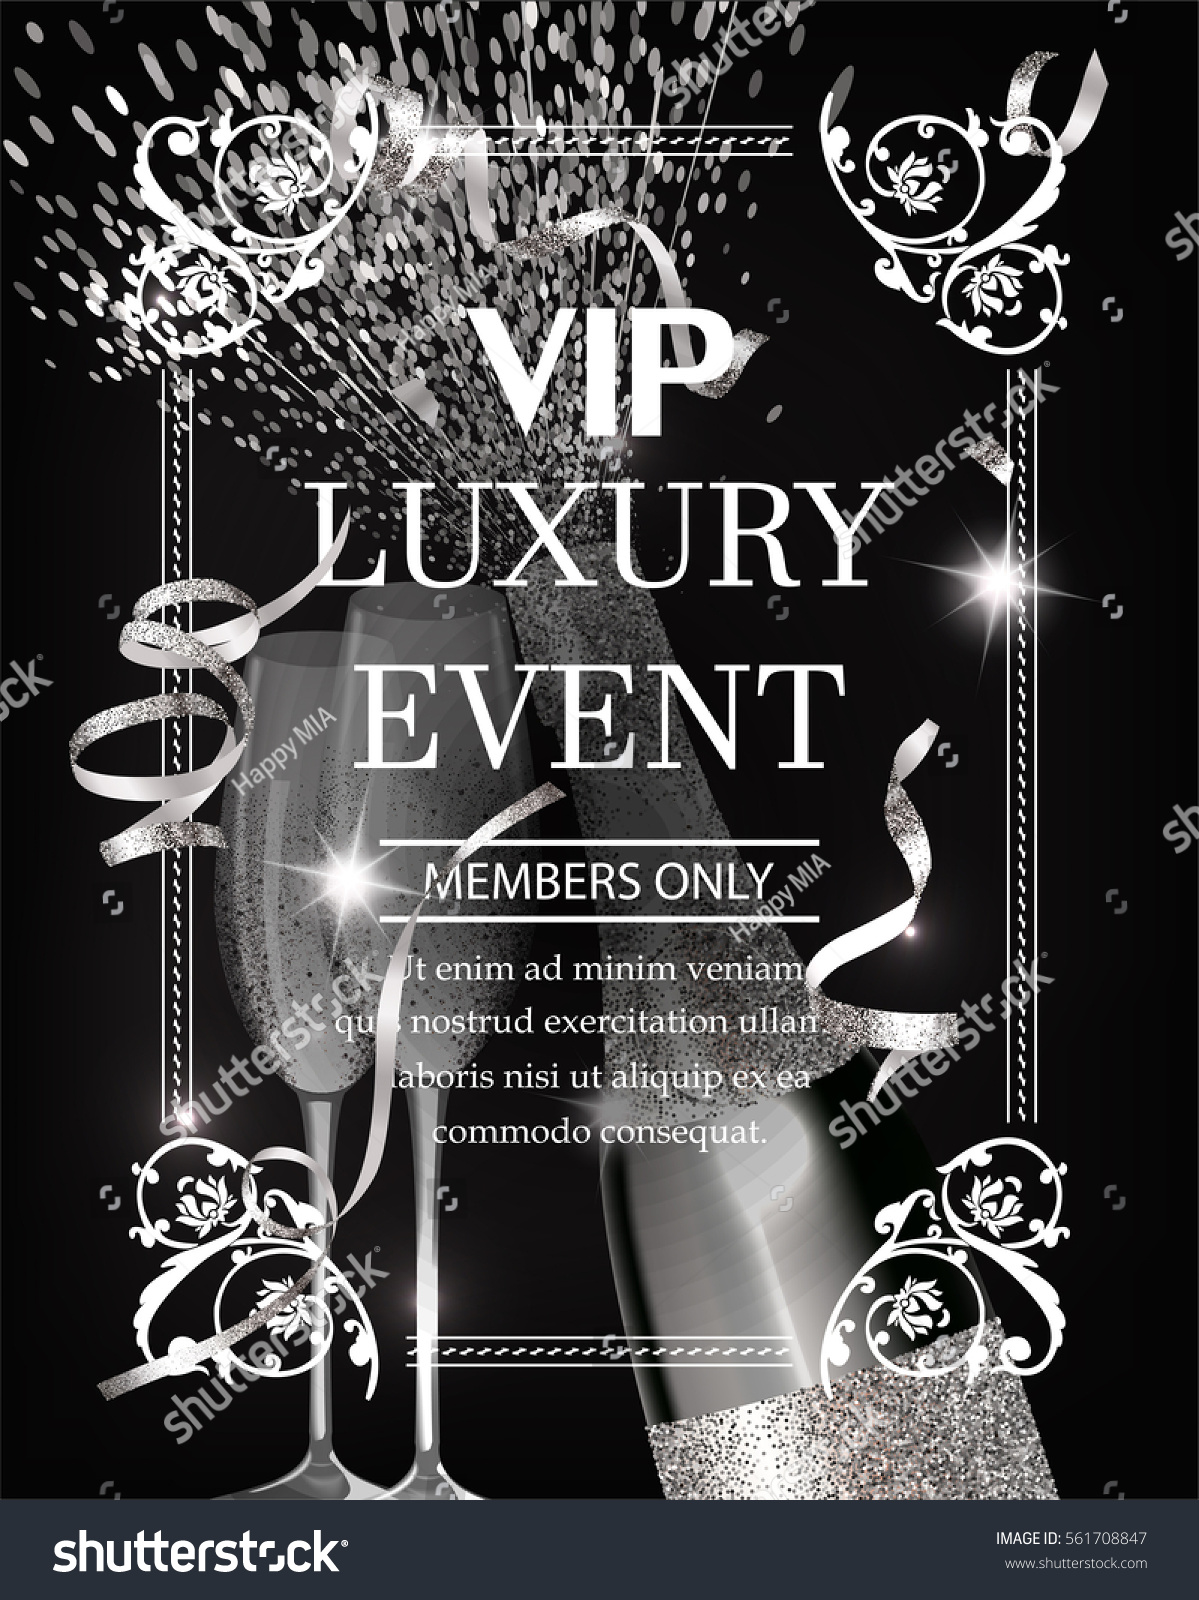 Luxury event invitation shiny banner silver stock vector 561708847 luxury event invitation shiny banner silver stock vector 561708847 shutterstock stopboris Image collections